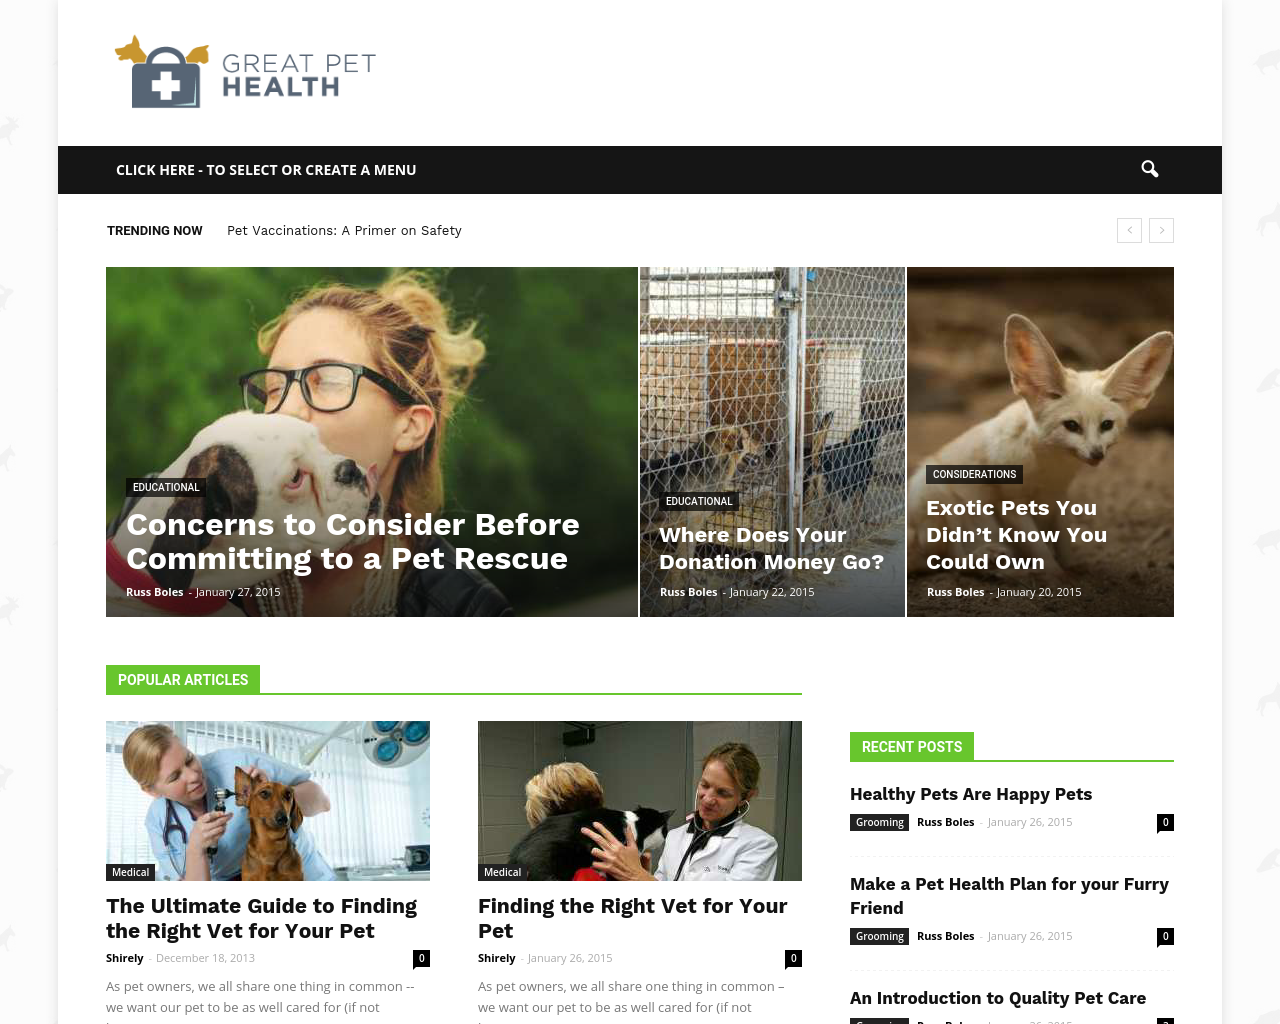 Great-Pet-Health-Advertising-Reviews-Pricing